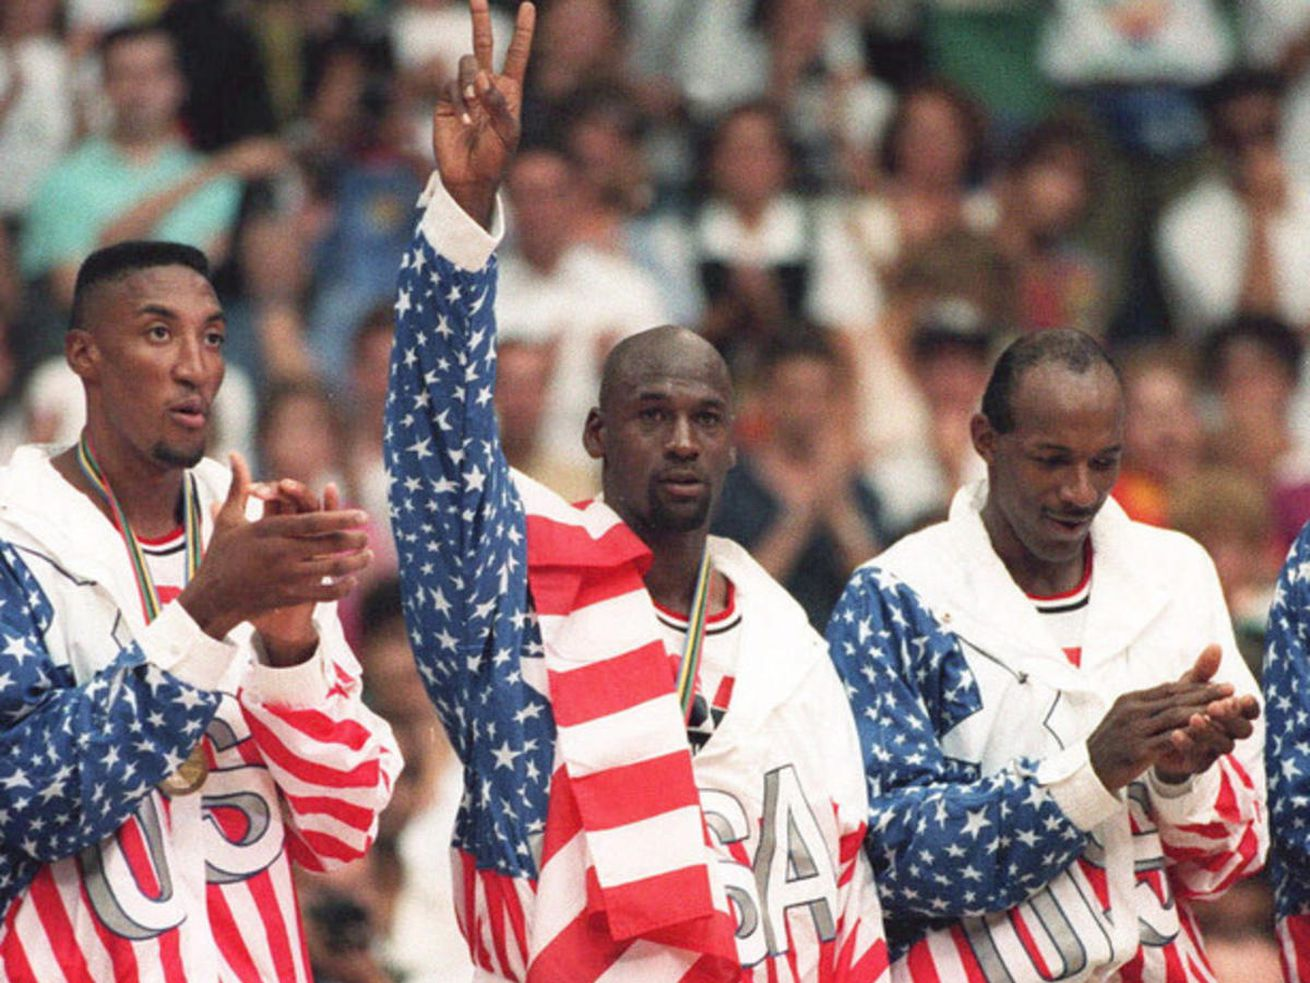 In sweeping their overmatched international opponents in Barcelona, the U.S. Dream Team (including, from left, Scottie Pippen, Michael Jordan and Clyde Drexler) created by 11 NBA superstars set the standard for future American basketball teams.